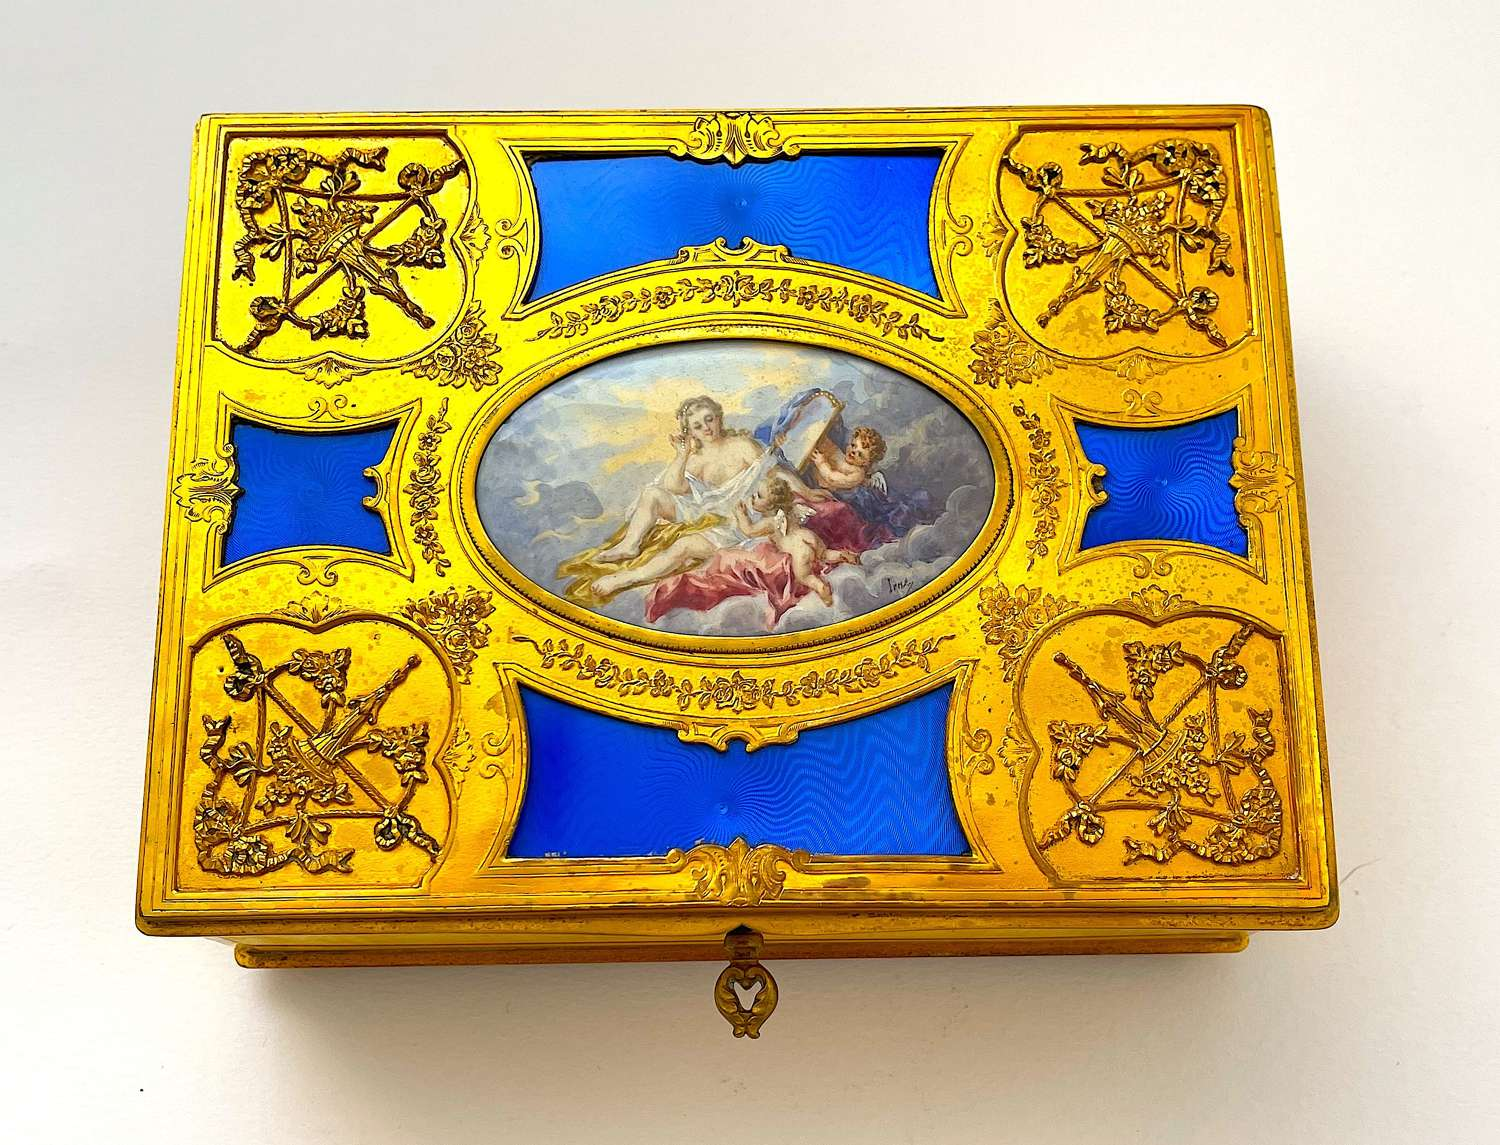 A Large High Quality French BlueGuillouche Enamel & Gilded BronzeBox